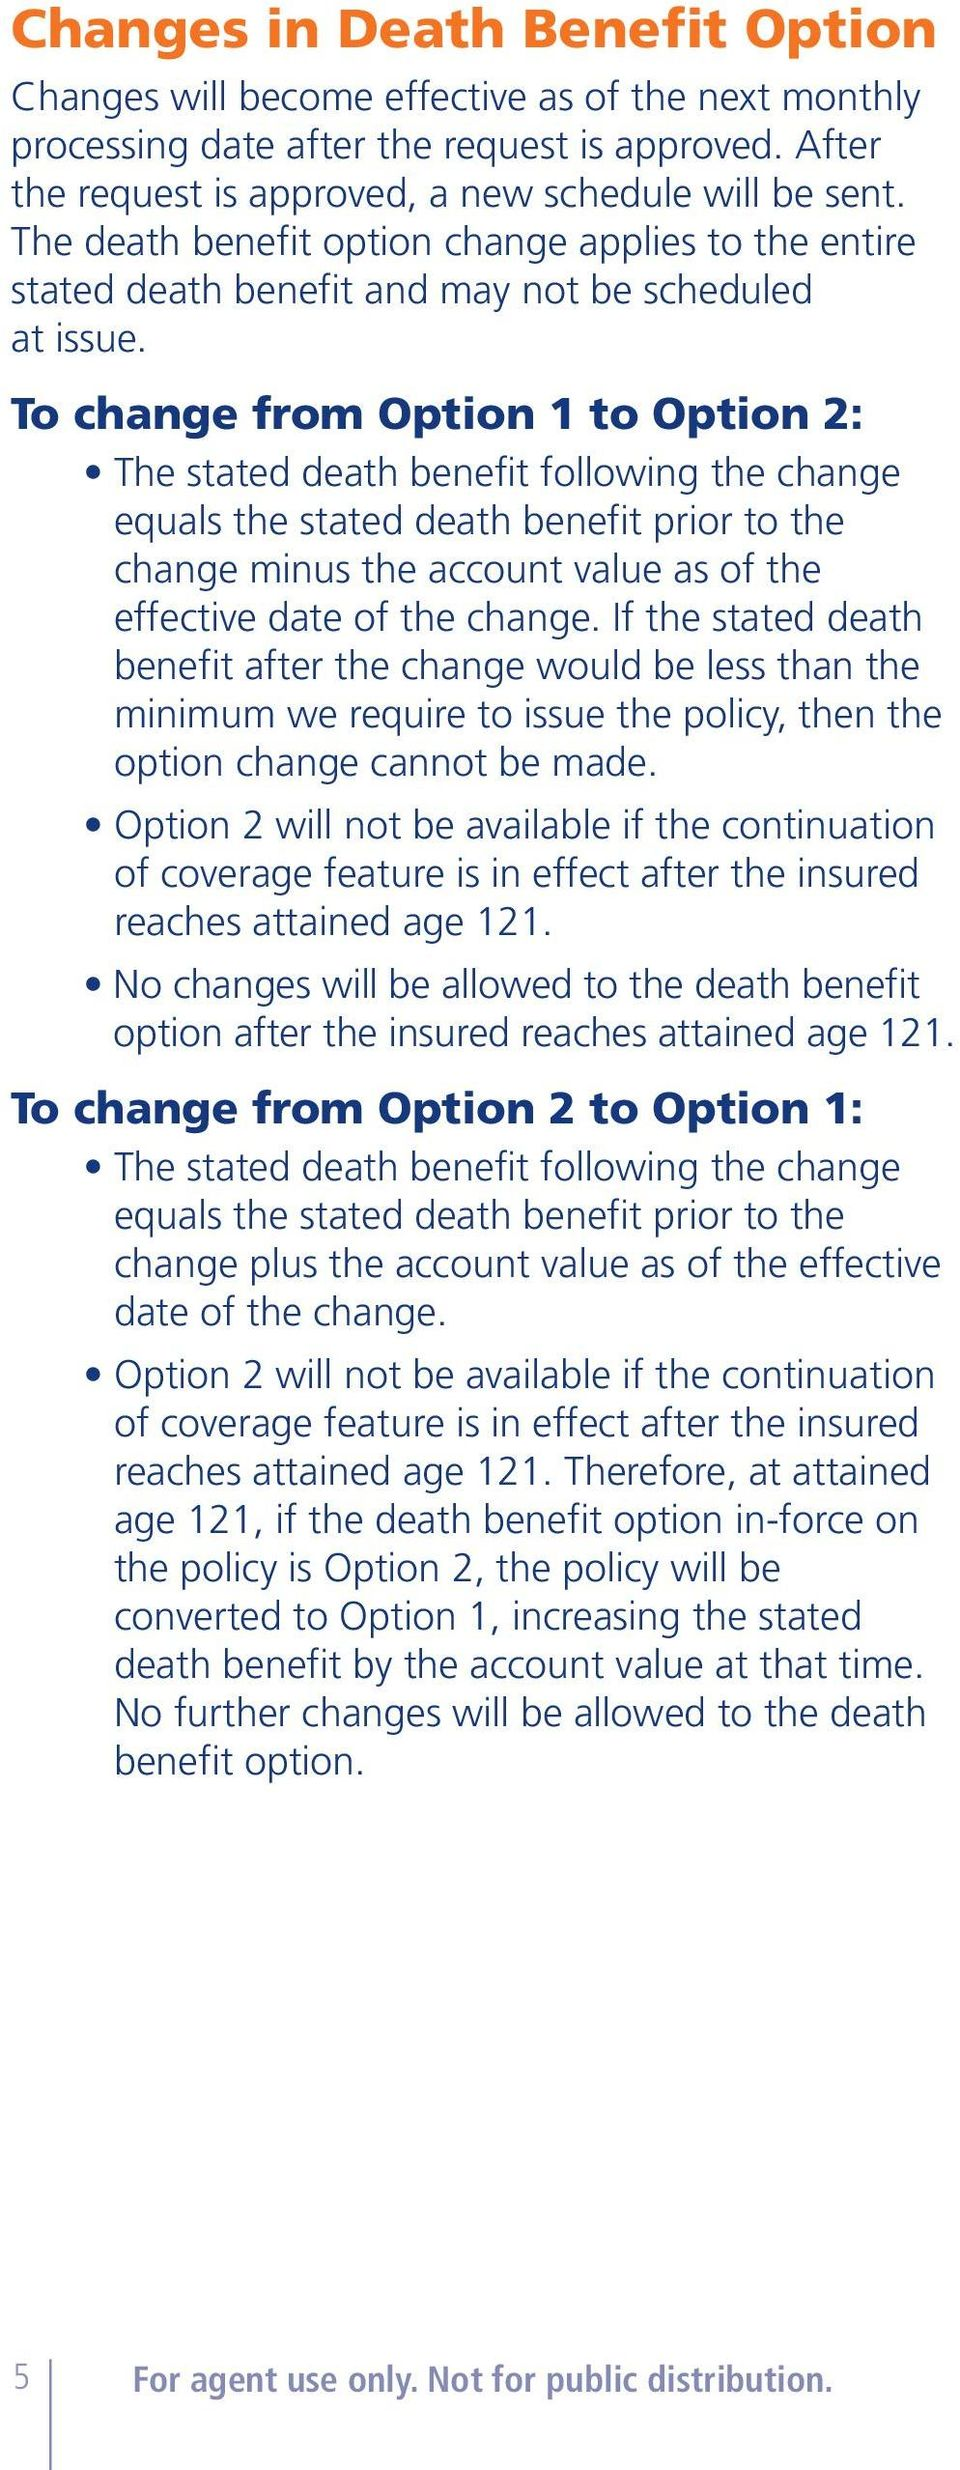 To change from Option 1 to Option 2: The stated death benefit following the change equals the stated death benefit prior to the change minus the account value as of the effective date of the change.